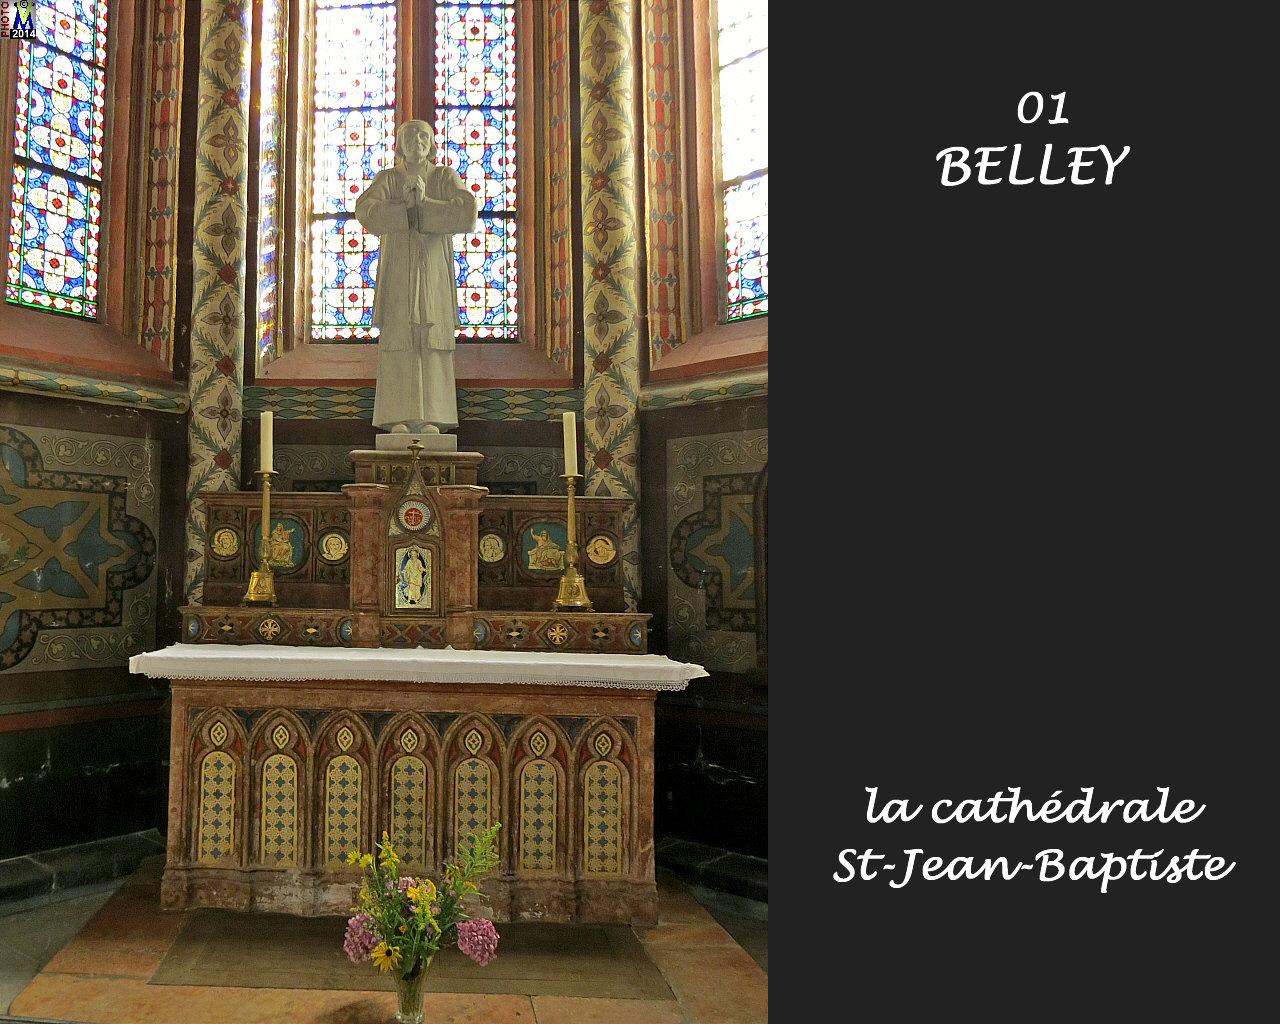 01BELLEY_cathedrale_234.jpg